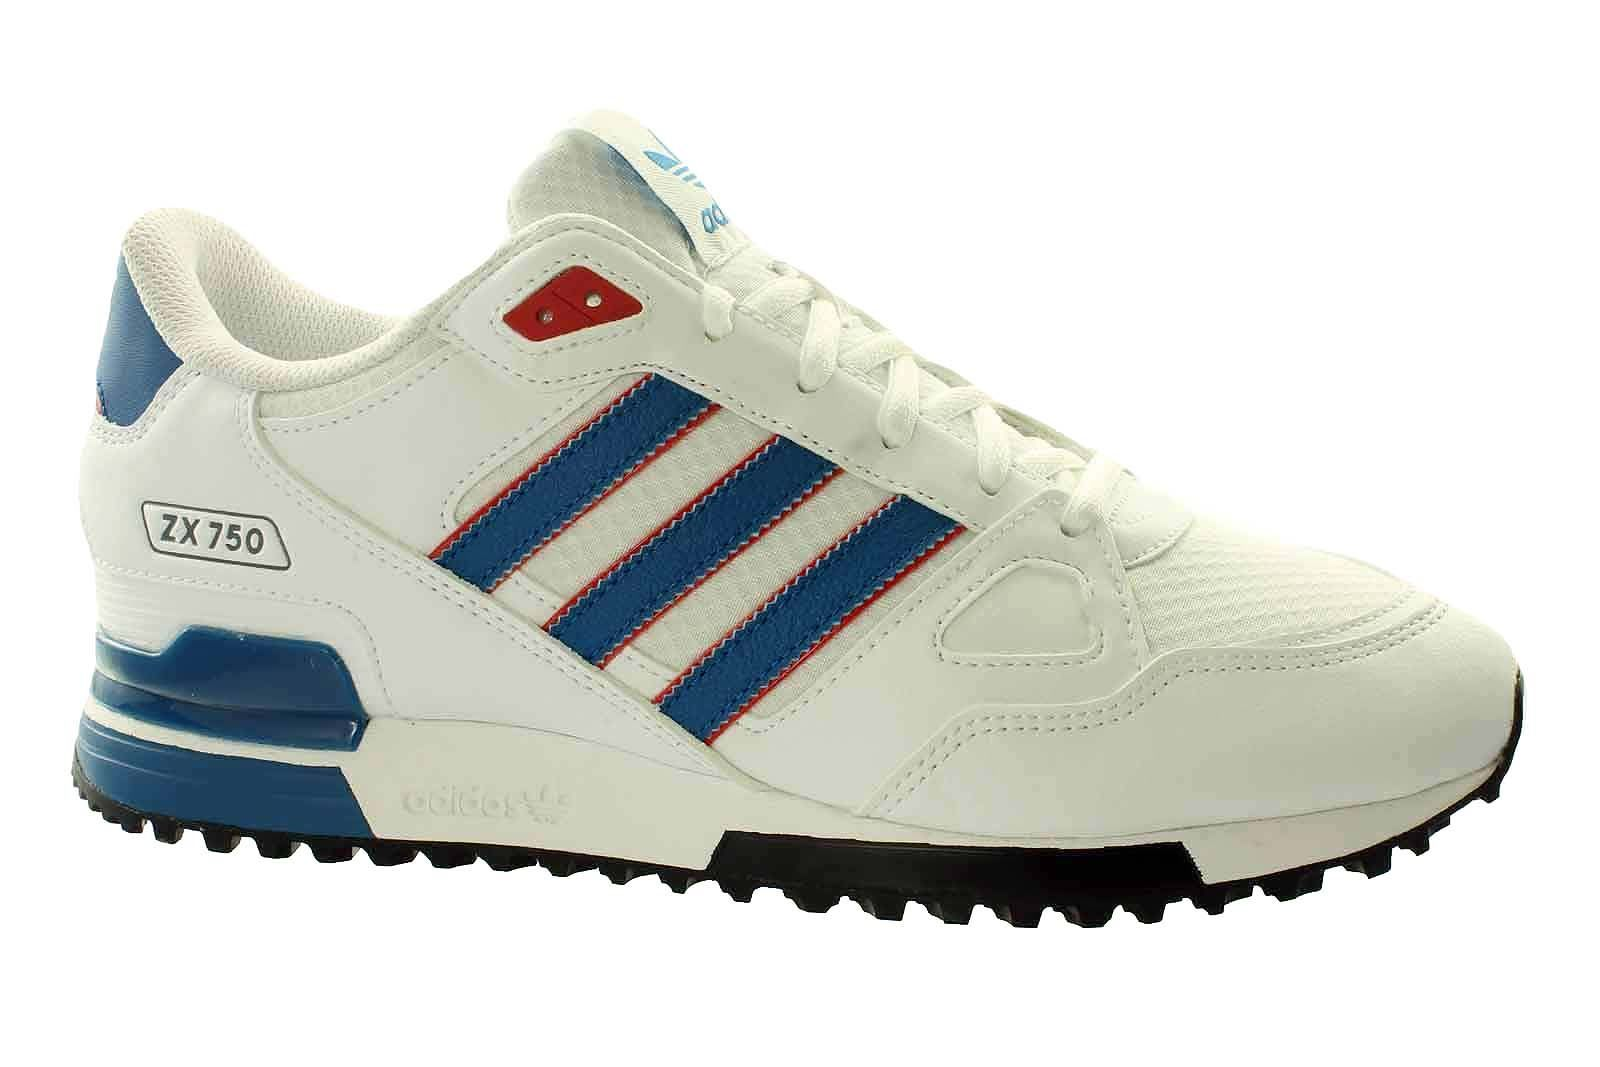 best website 9a881 70a03 adidas ZX 750 Mens Trainers~Originals~UK 3.5 - 11.5 Only